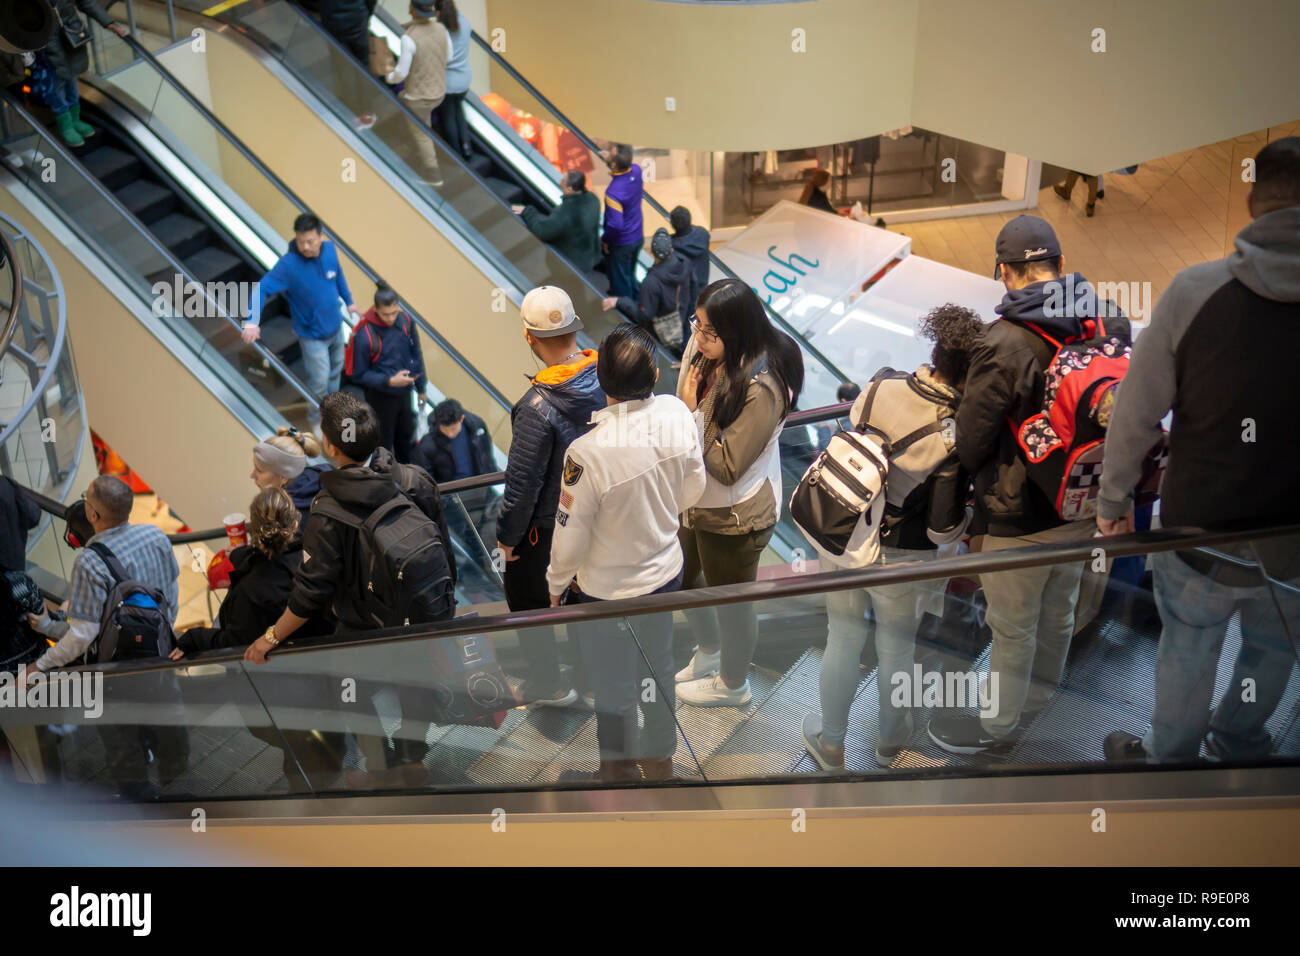 90b35e914a 2018 Crowds of last minute shoppers pack the Queens Center Mall in the  borough of Queens in New York on the so-called Super Saturday. the Saturday  ...